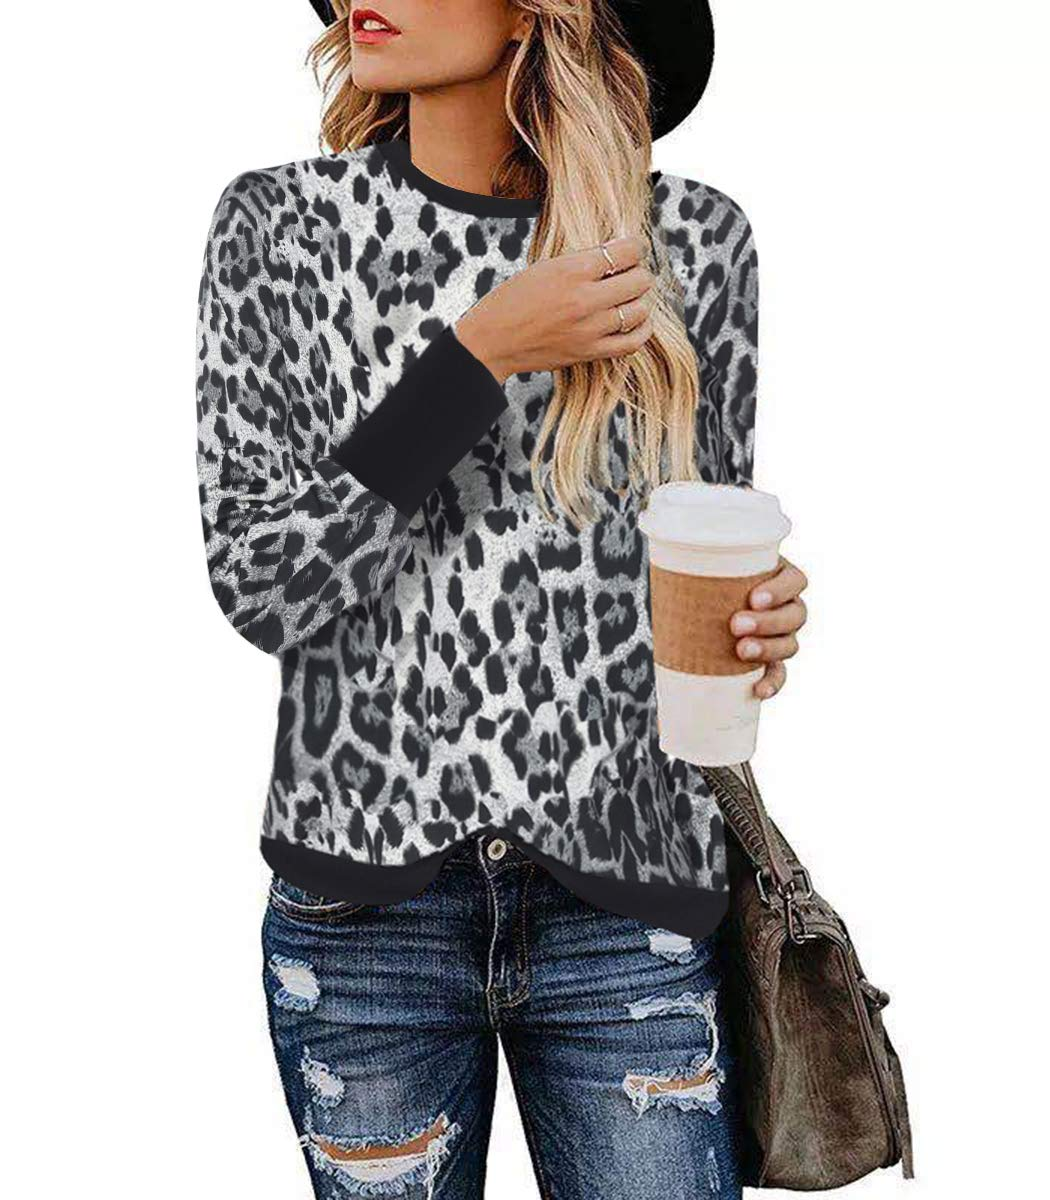 Women Tops Stylish Leopard Print Shirts Long Sleeve Patchwork Pullover Casual Round Neck Blouse